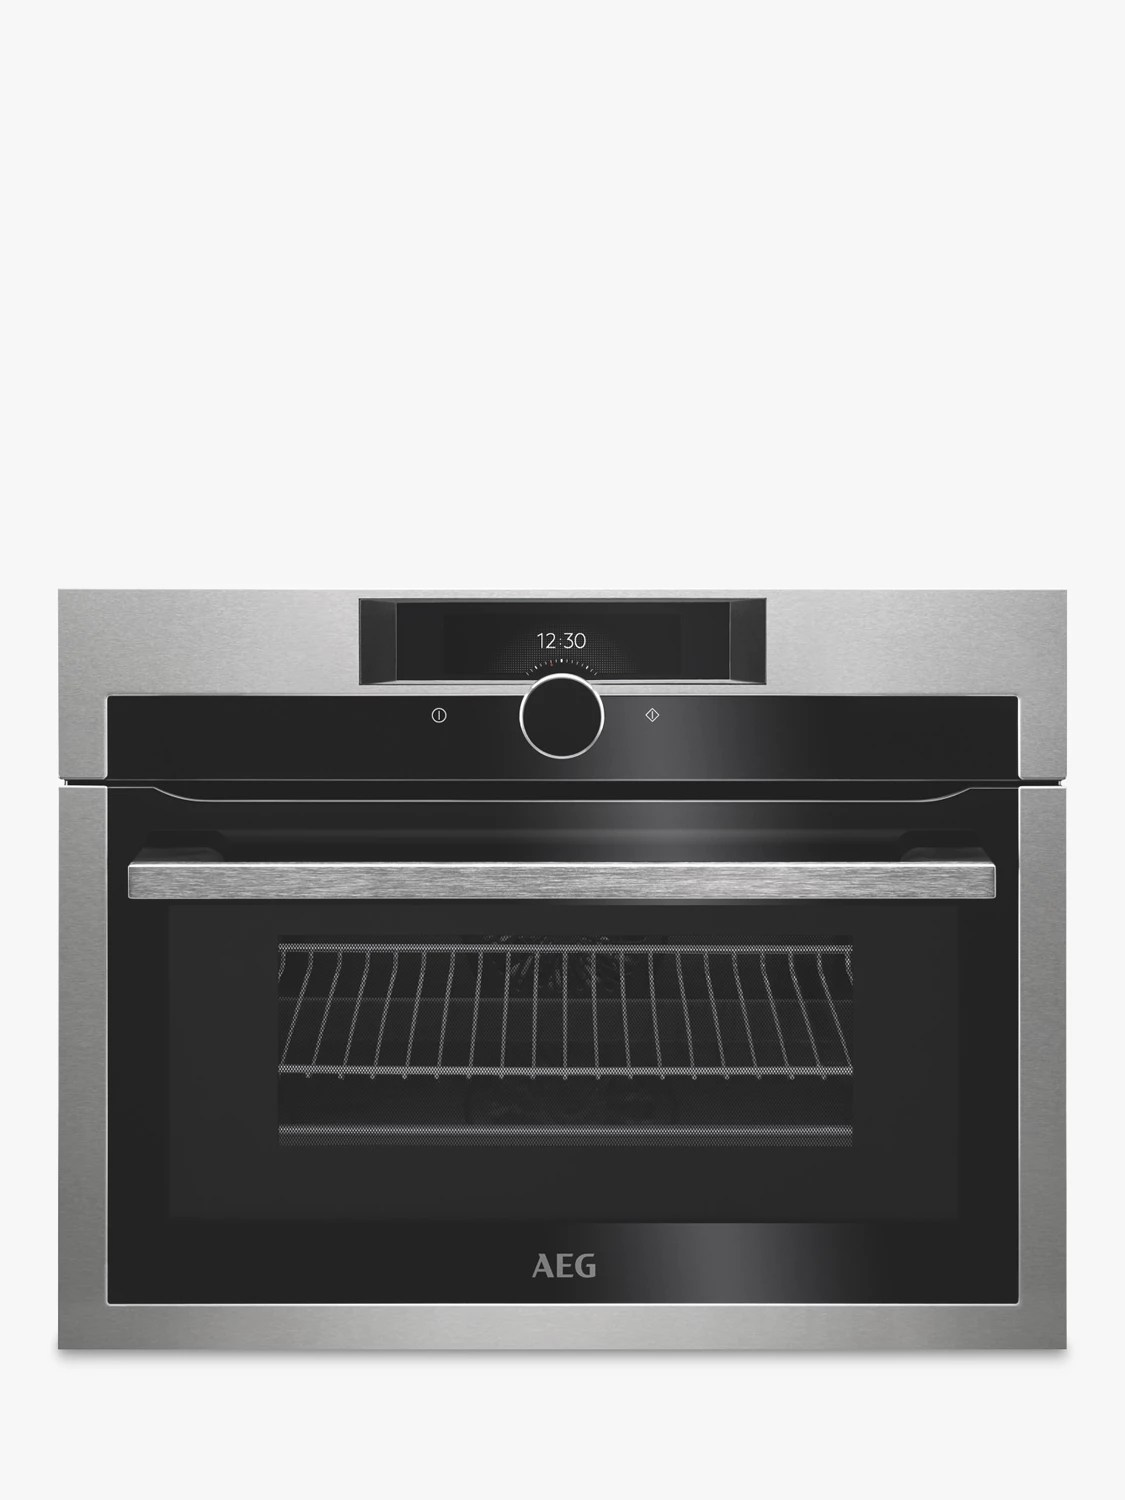 Aeg Online Shop Aeg Kme861000m Combiquick Compact Oven With Microwave Stainless